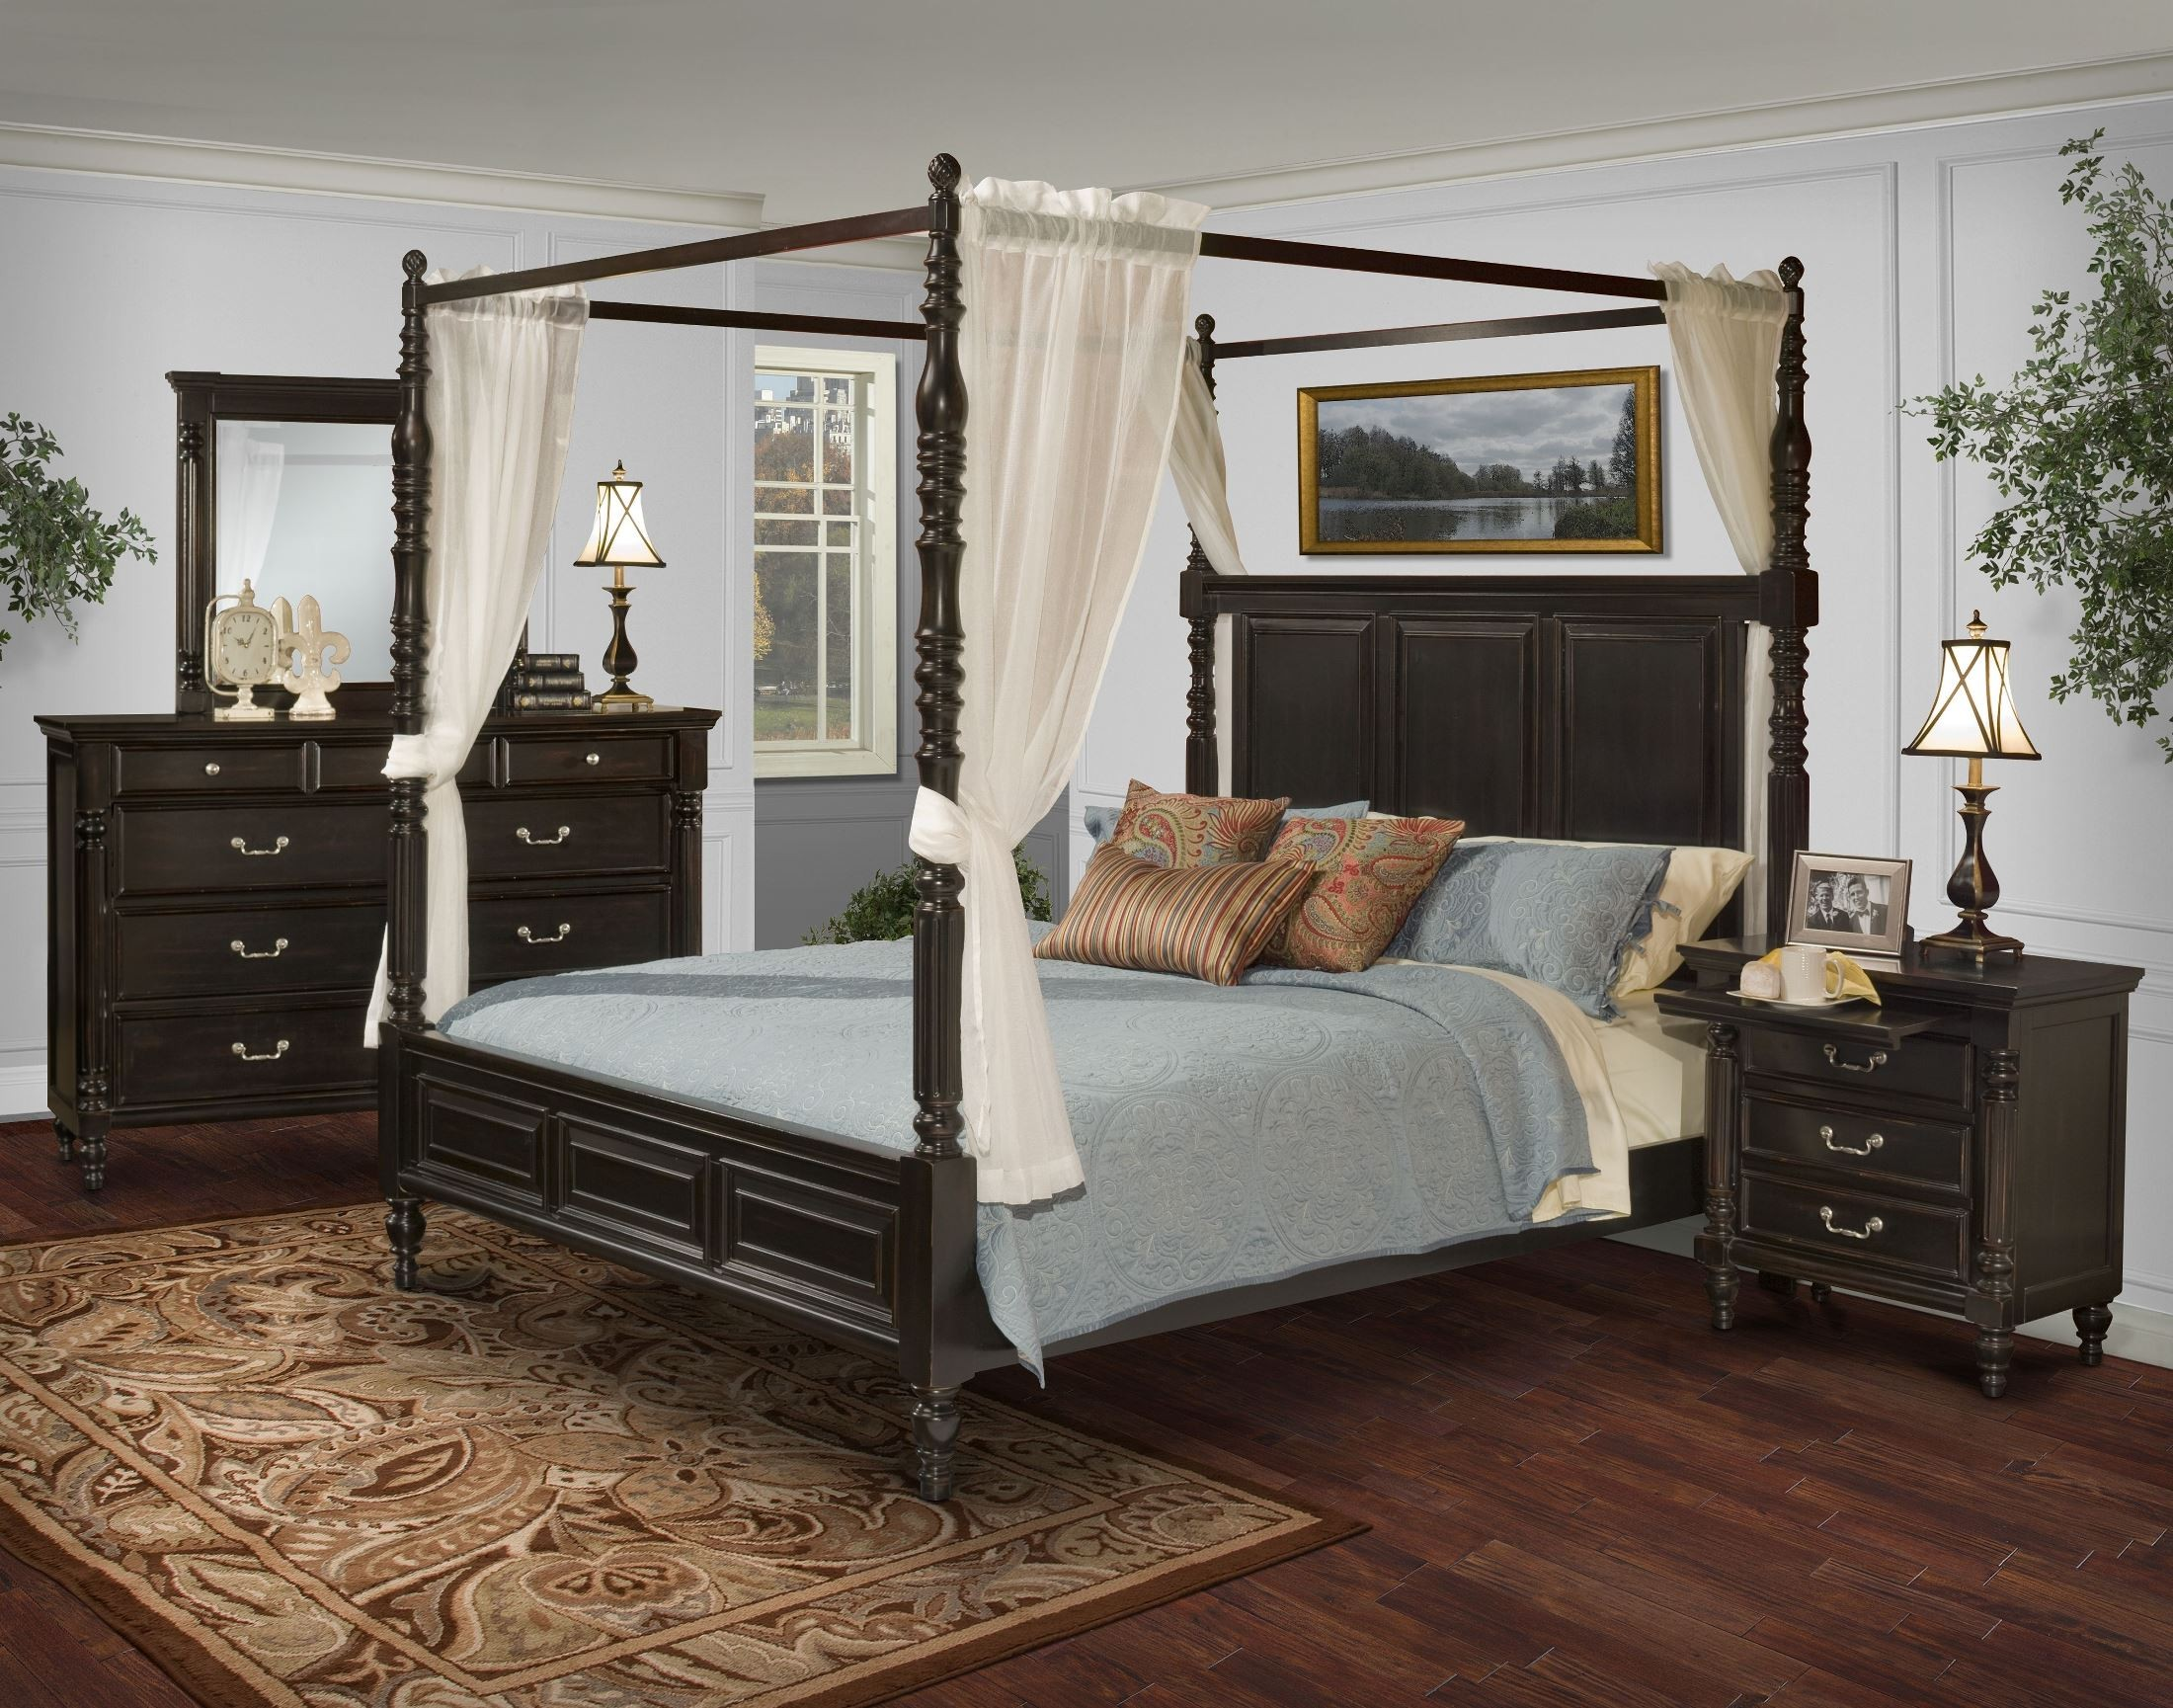 martinique rubbed black cal king canopy bed with drapes